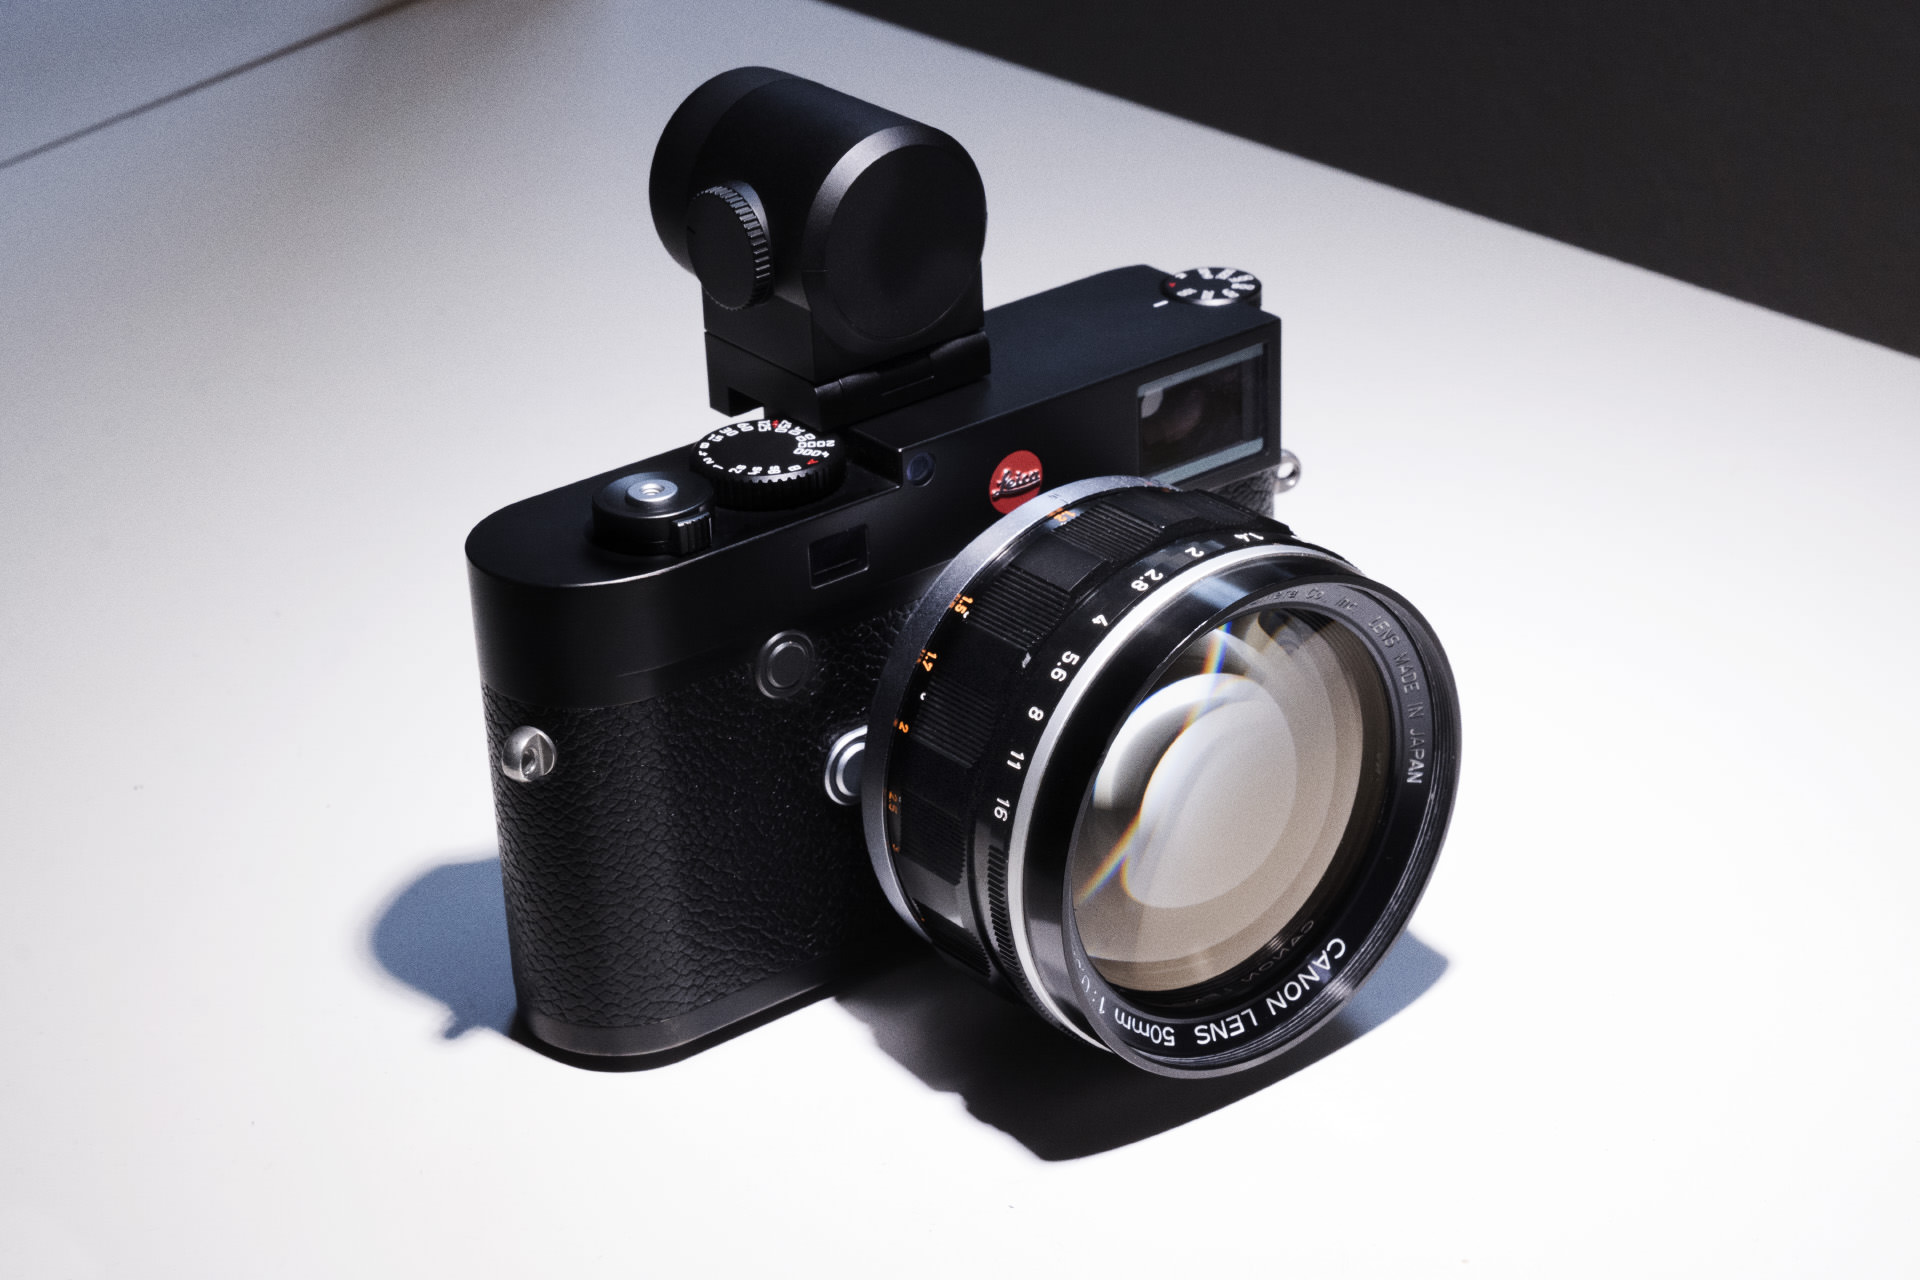 Leica M10 with Canon 50mm f0.95